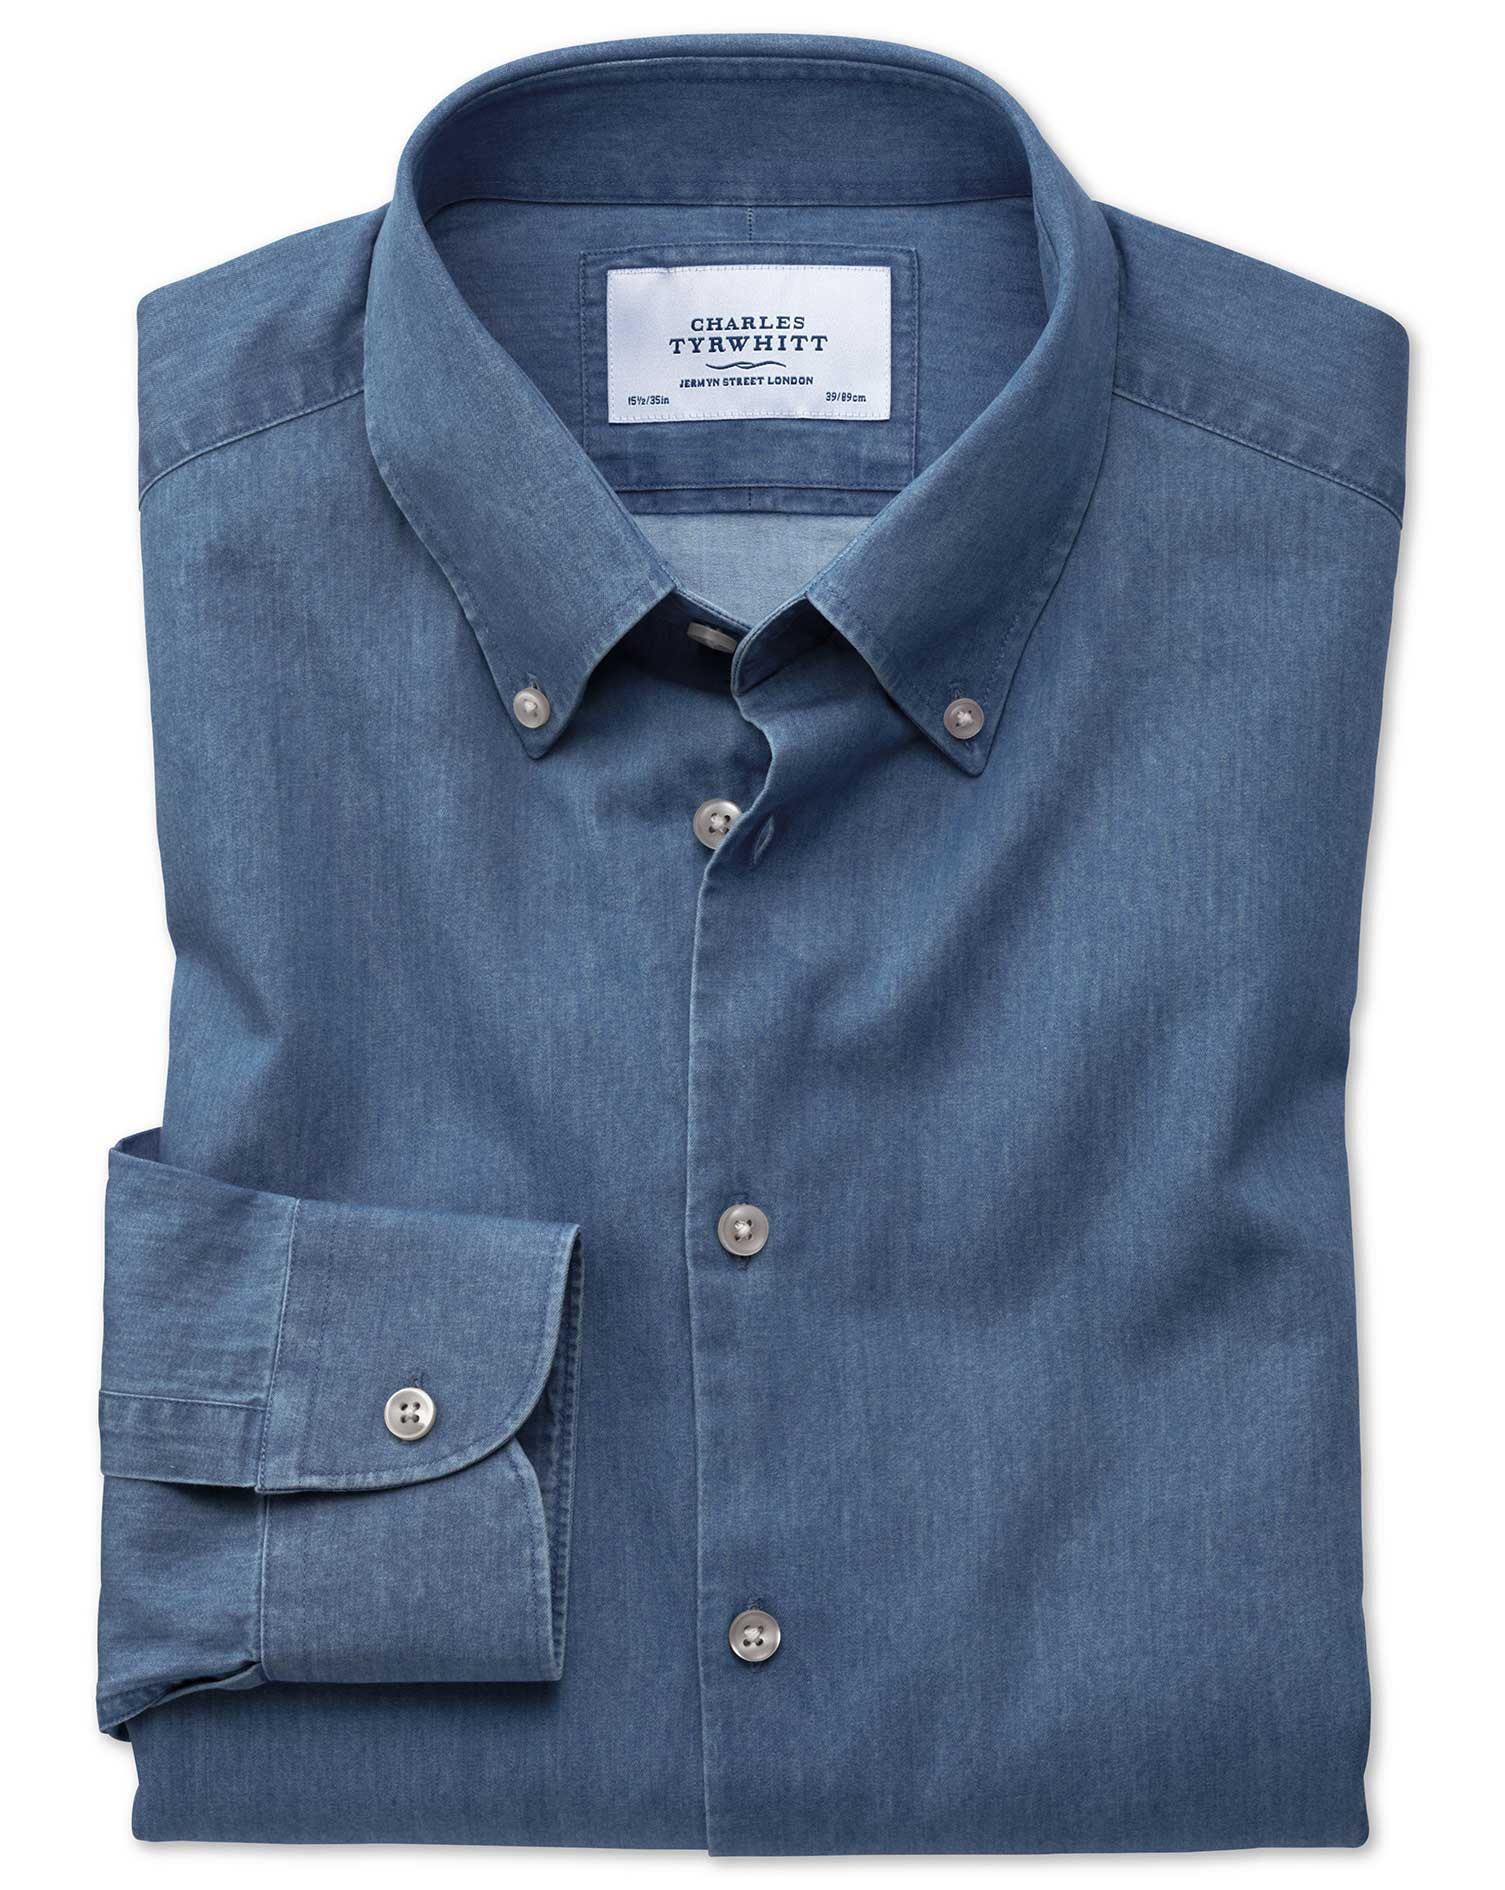 Slim Fit Button-Down Business Casual Indigo Mid Blue Cotton Formal Shirt Single Cuff Size 17/34 by C